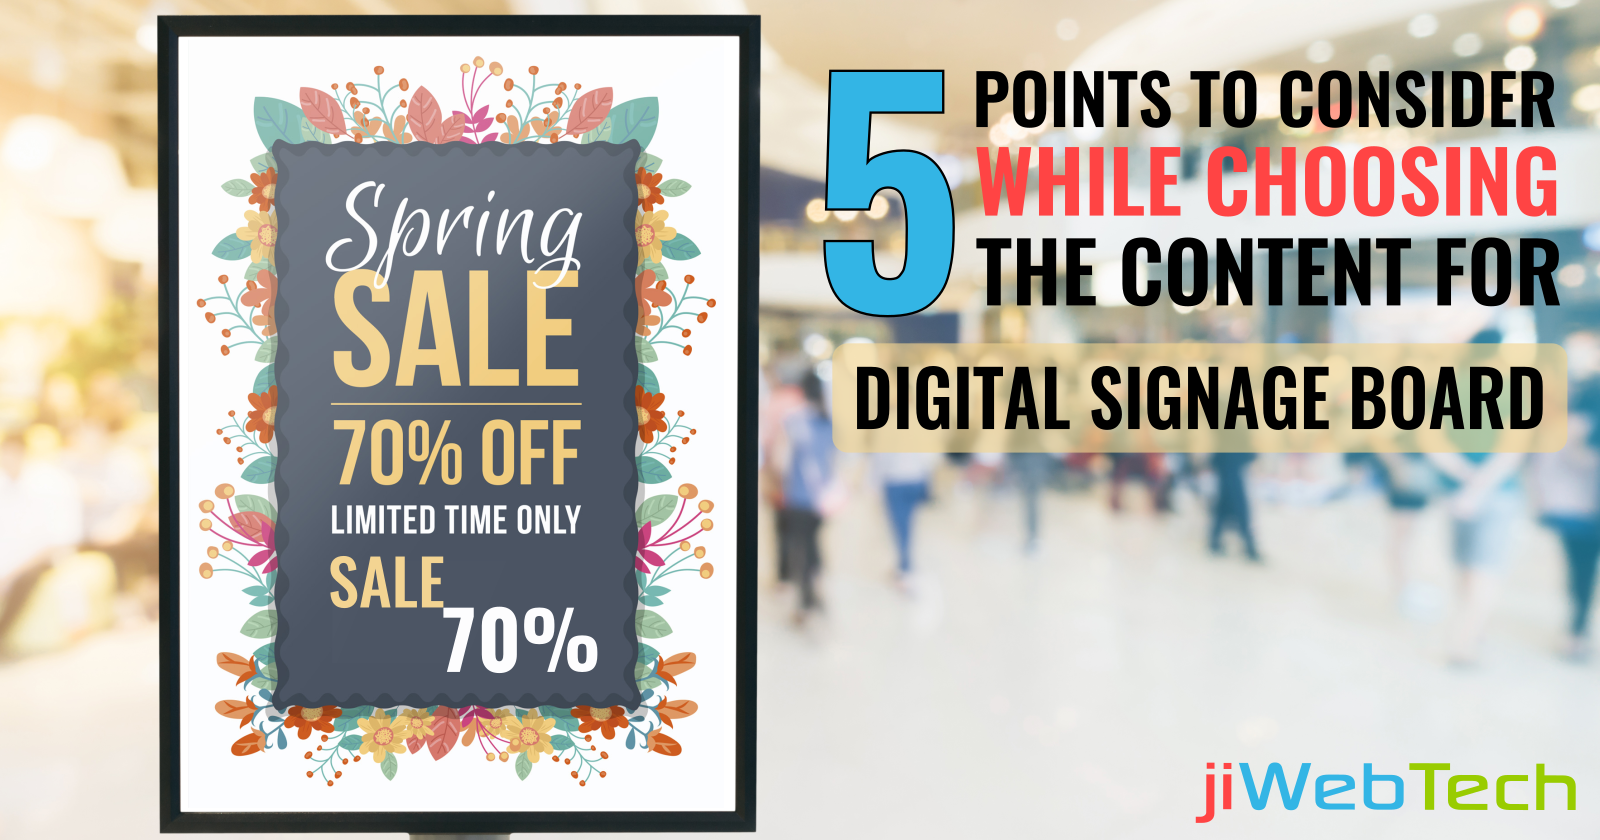 5 Points To Consider While Choosing The Content For Digital Signage Board